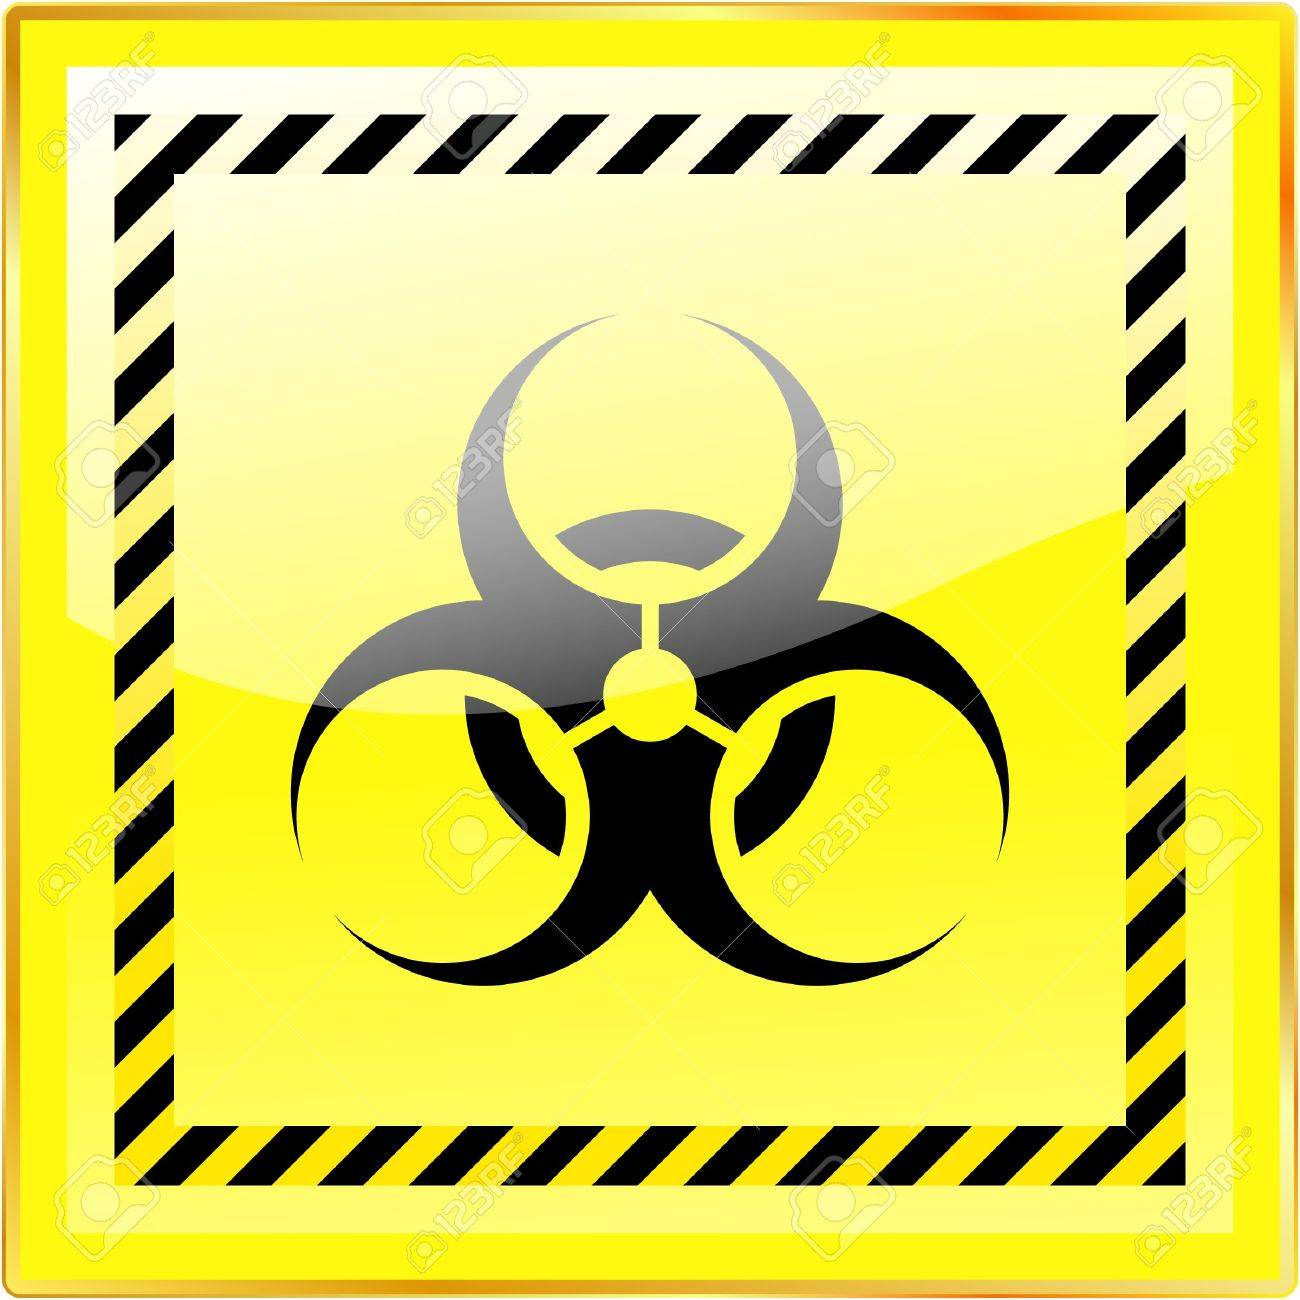 Biohazard sign. Stock Photo - 7880832